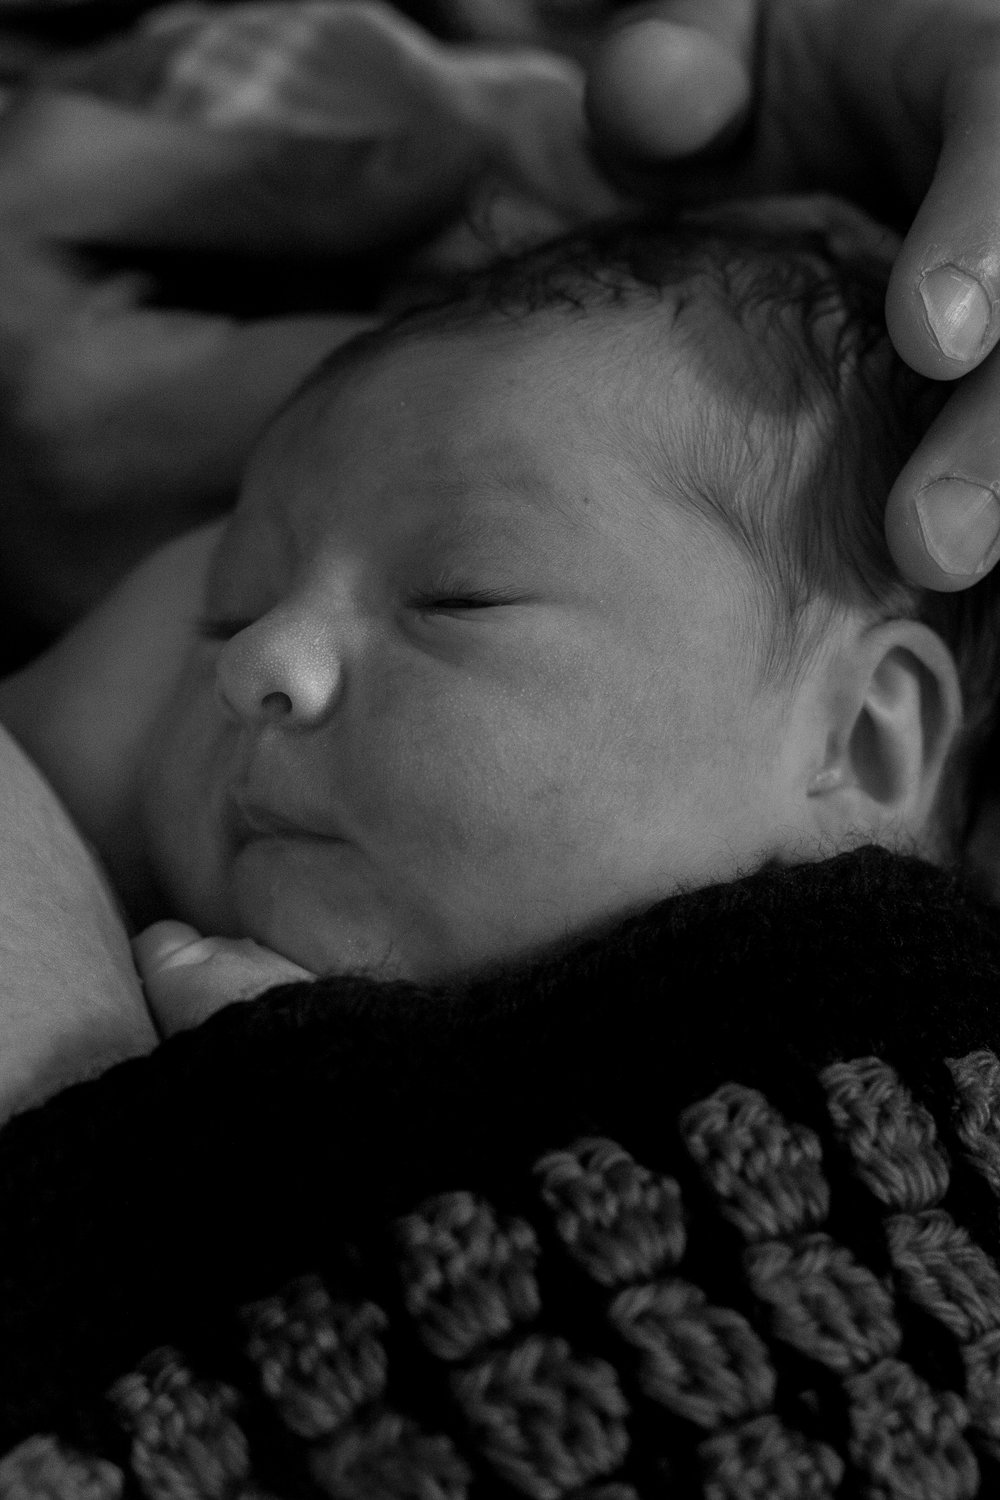 Black and white image of a newborn covered in a hand crocheted blanket.